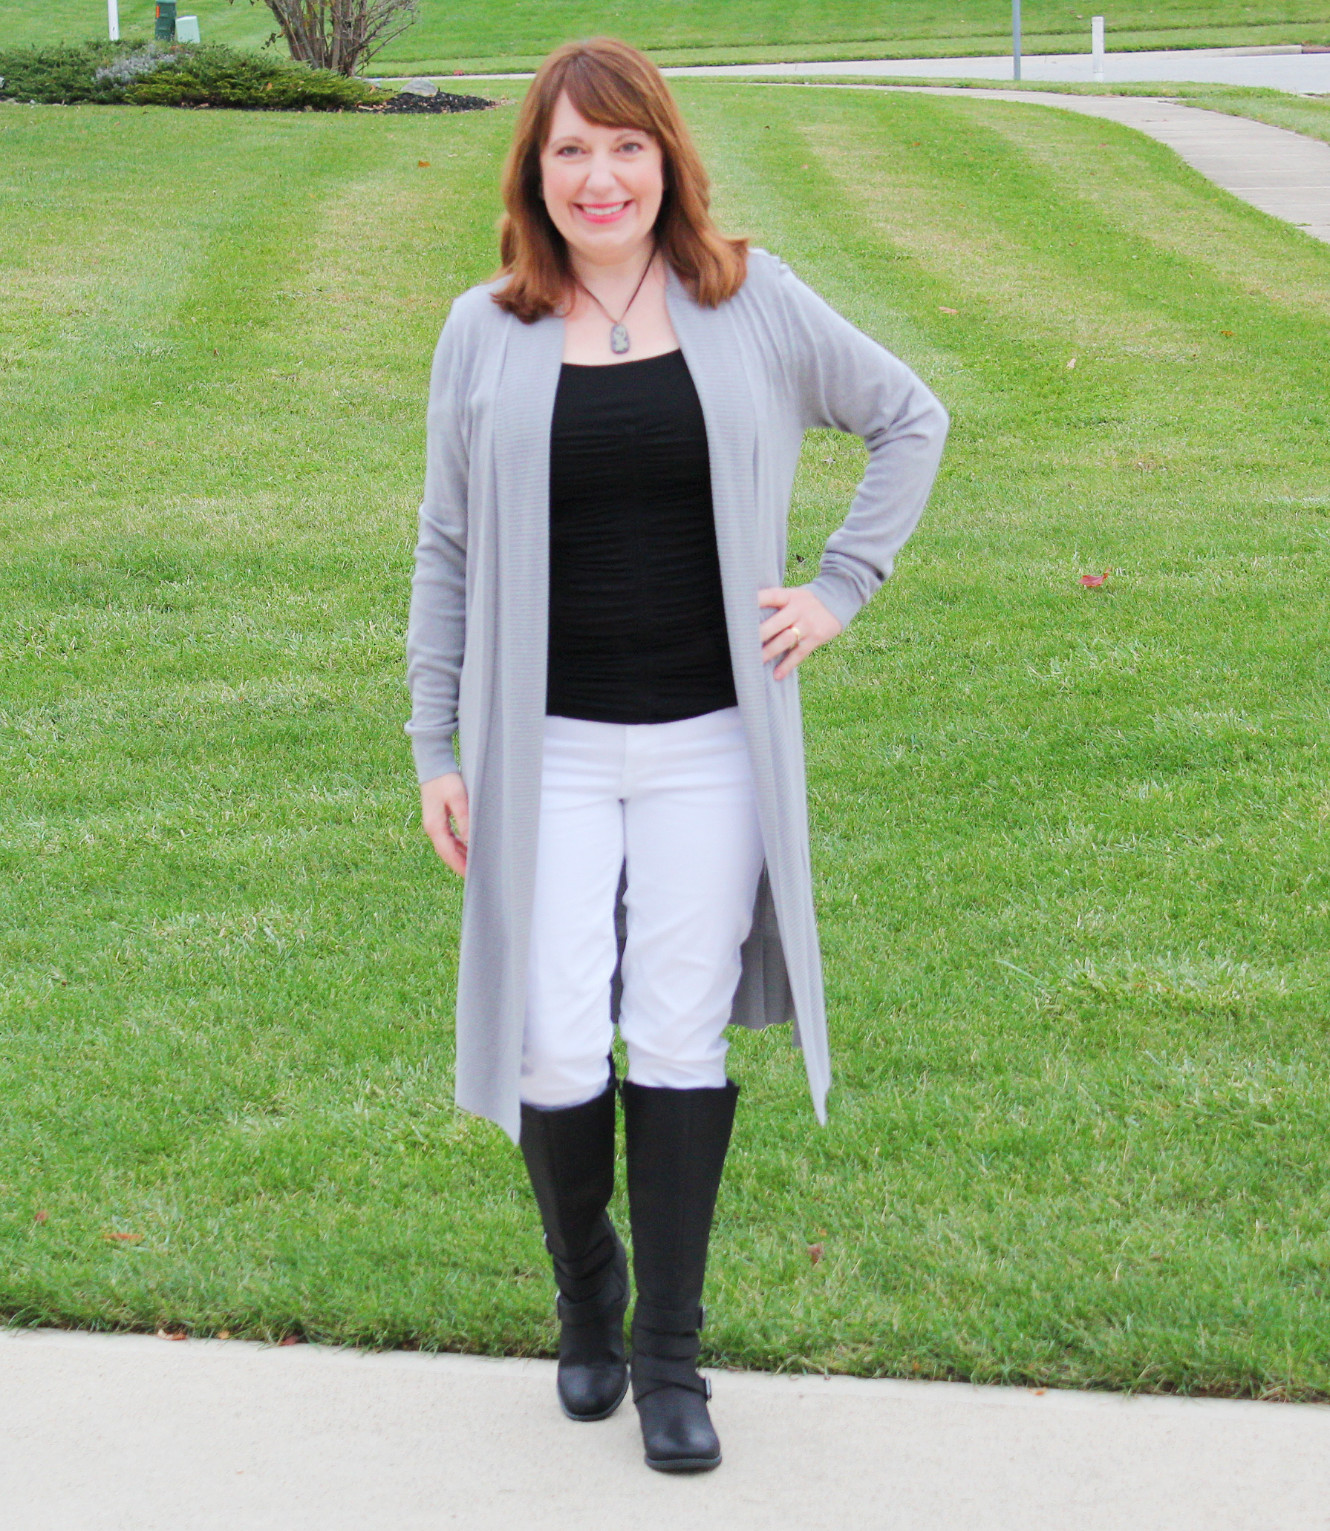 Gray Cardigan With Black Top, White Jeans, And Black Boots